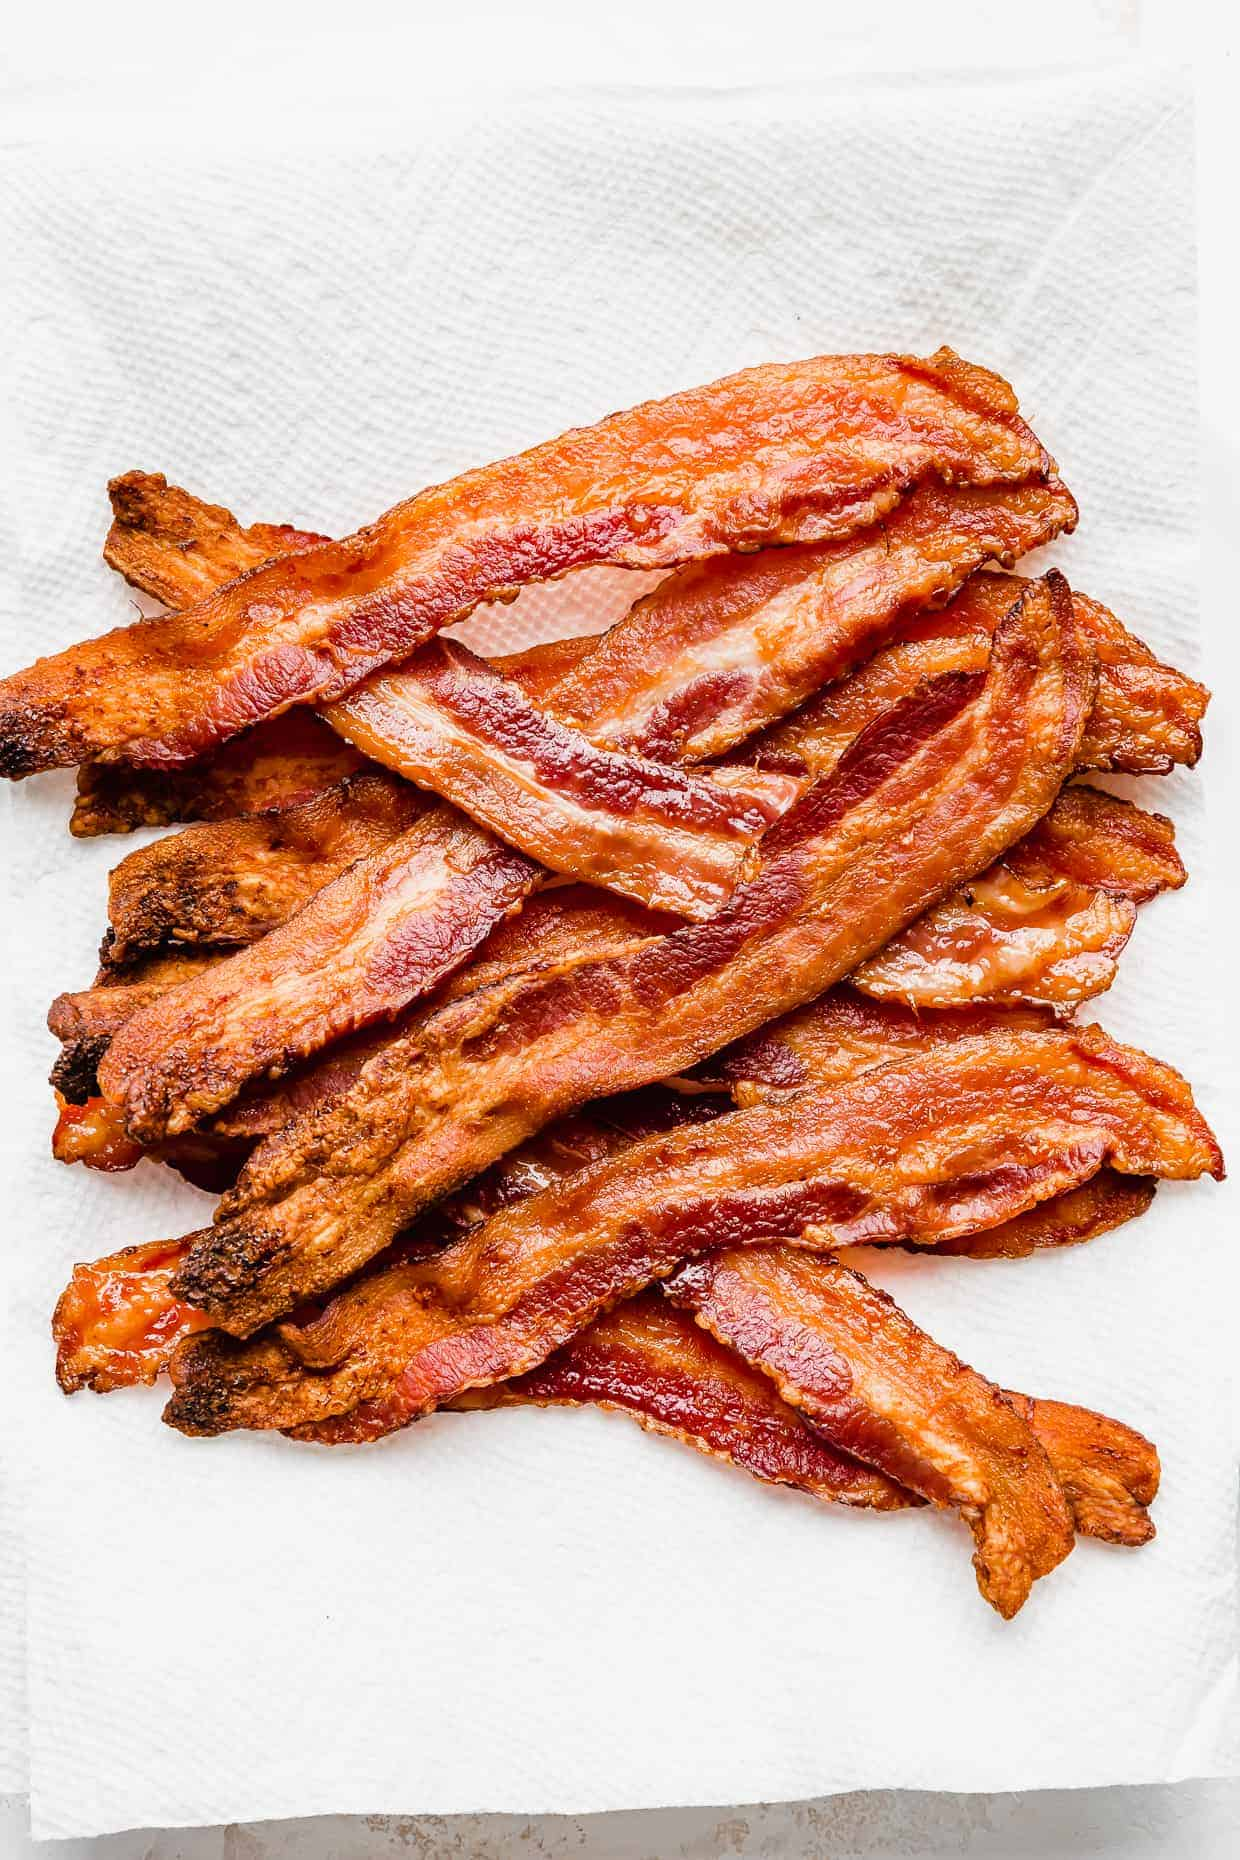 Strips of crispy bacon on a white paper towel.